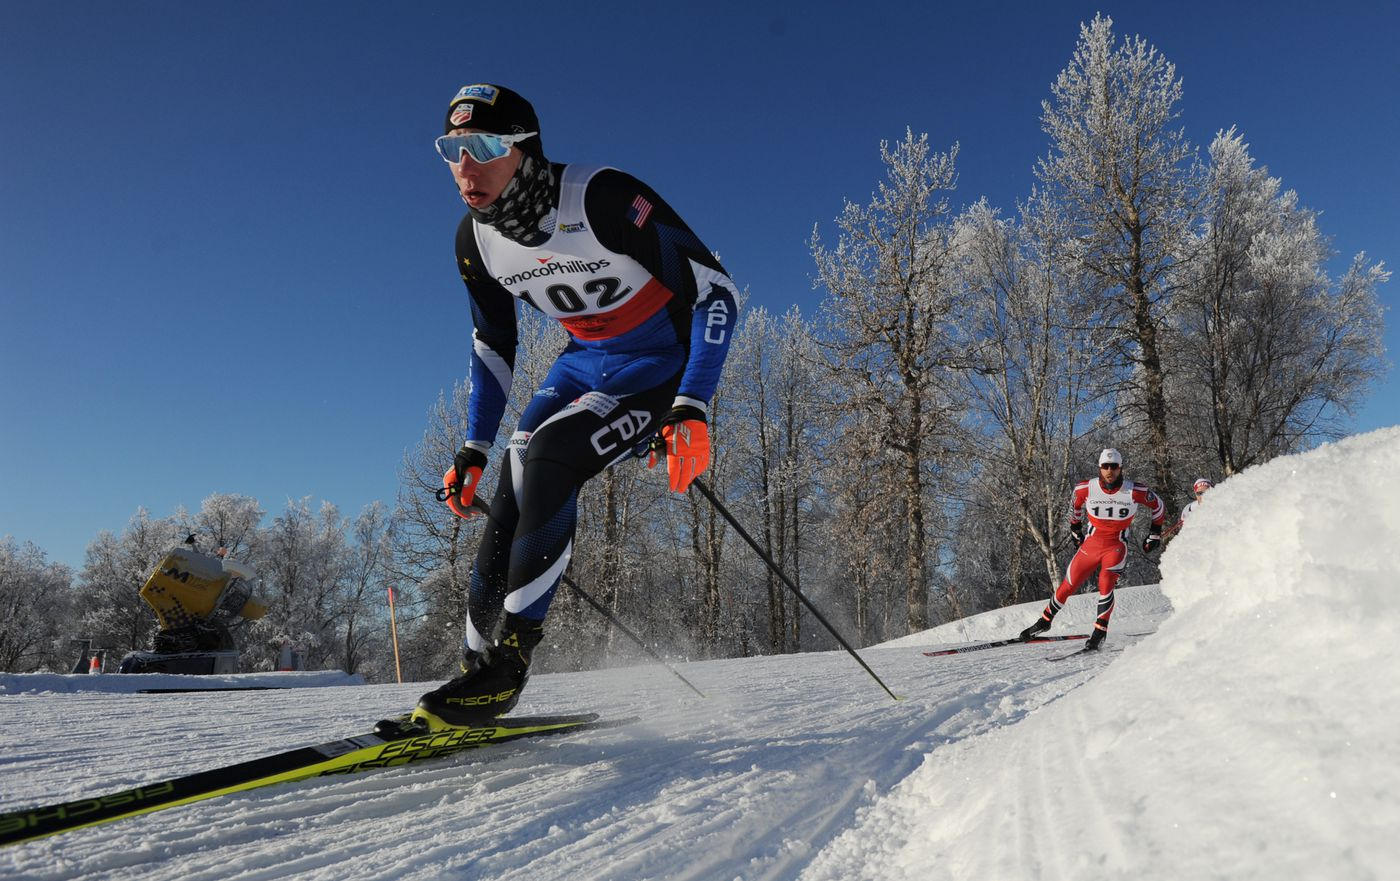 APU's Logan Hanneman, who finished second overall, rounds a corner during the freestyle sprint quarterfinals of the Seawolf Invitational at Kincaid Park on Tuesday, Feb. 7, 2017. (Bill Roth / ADN)